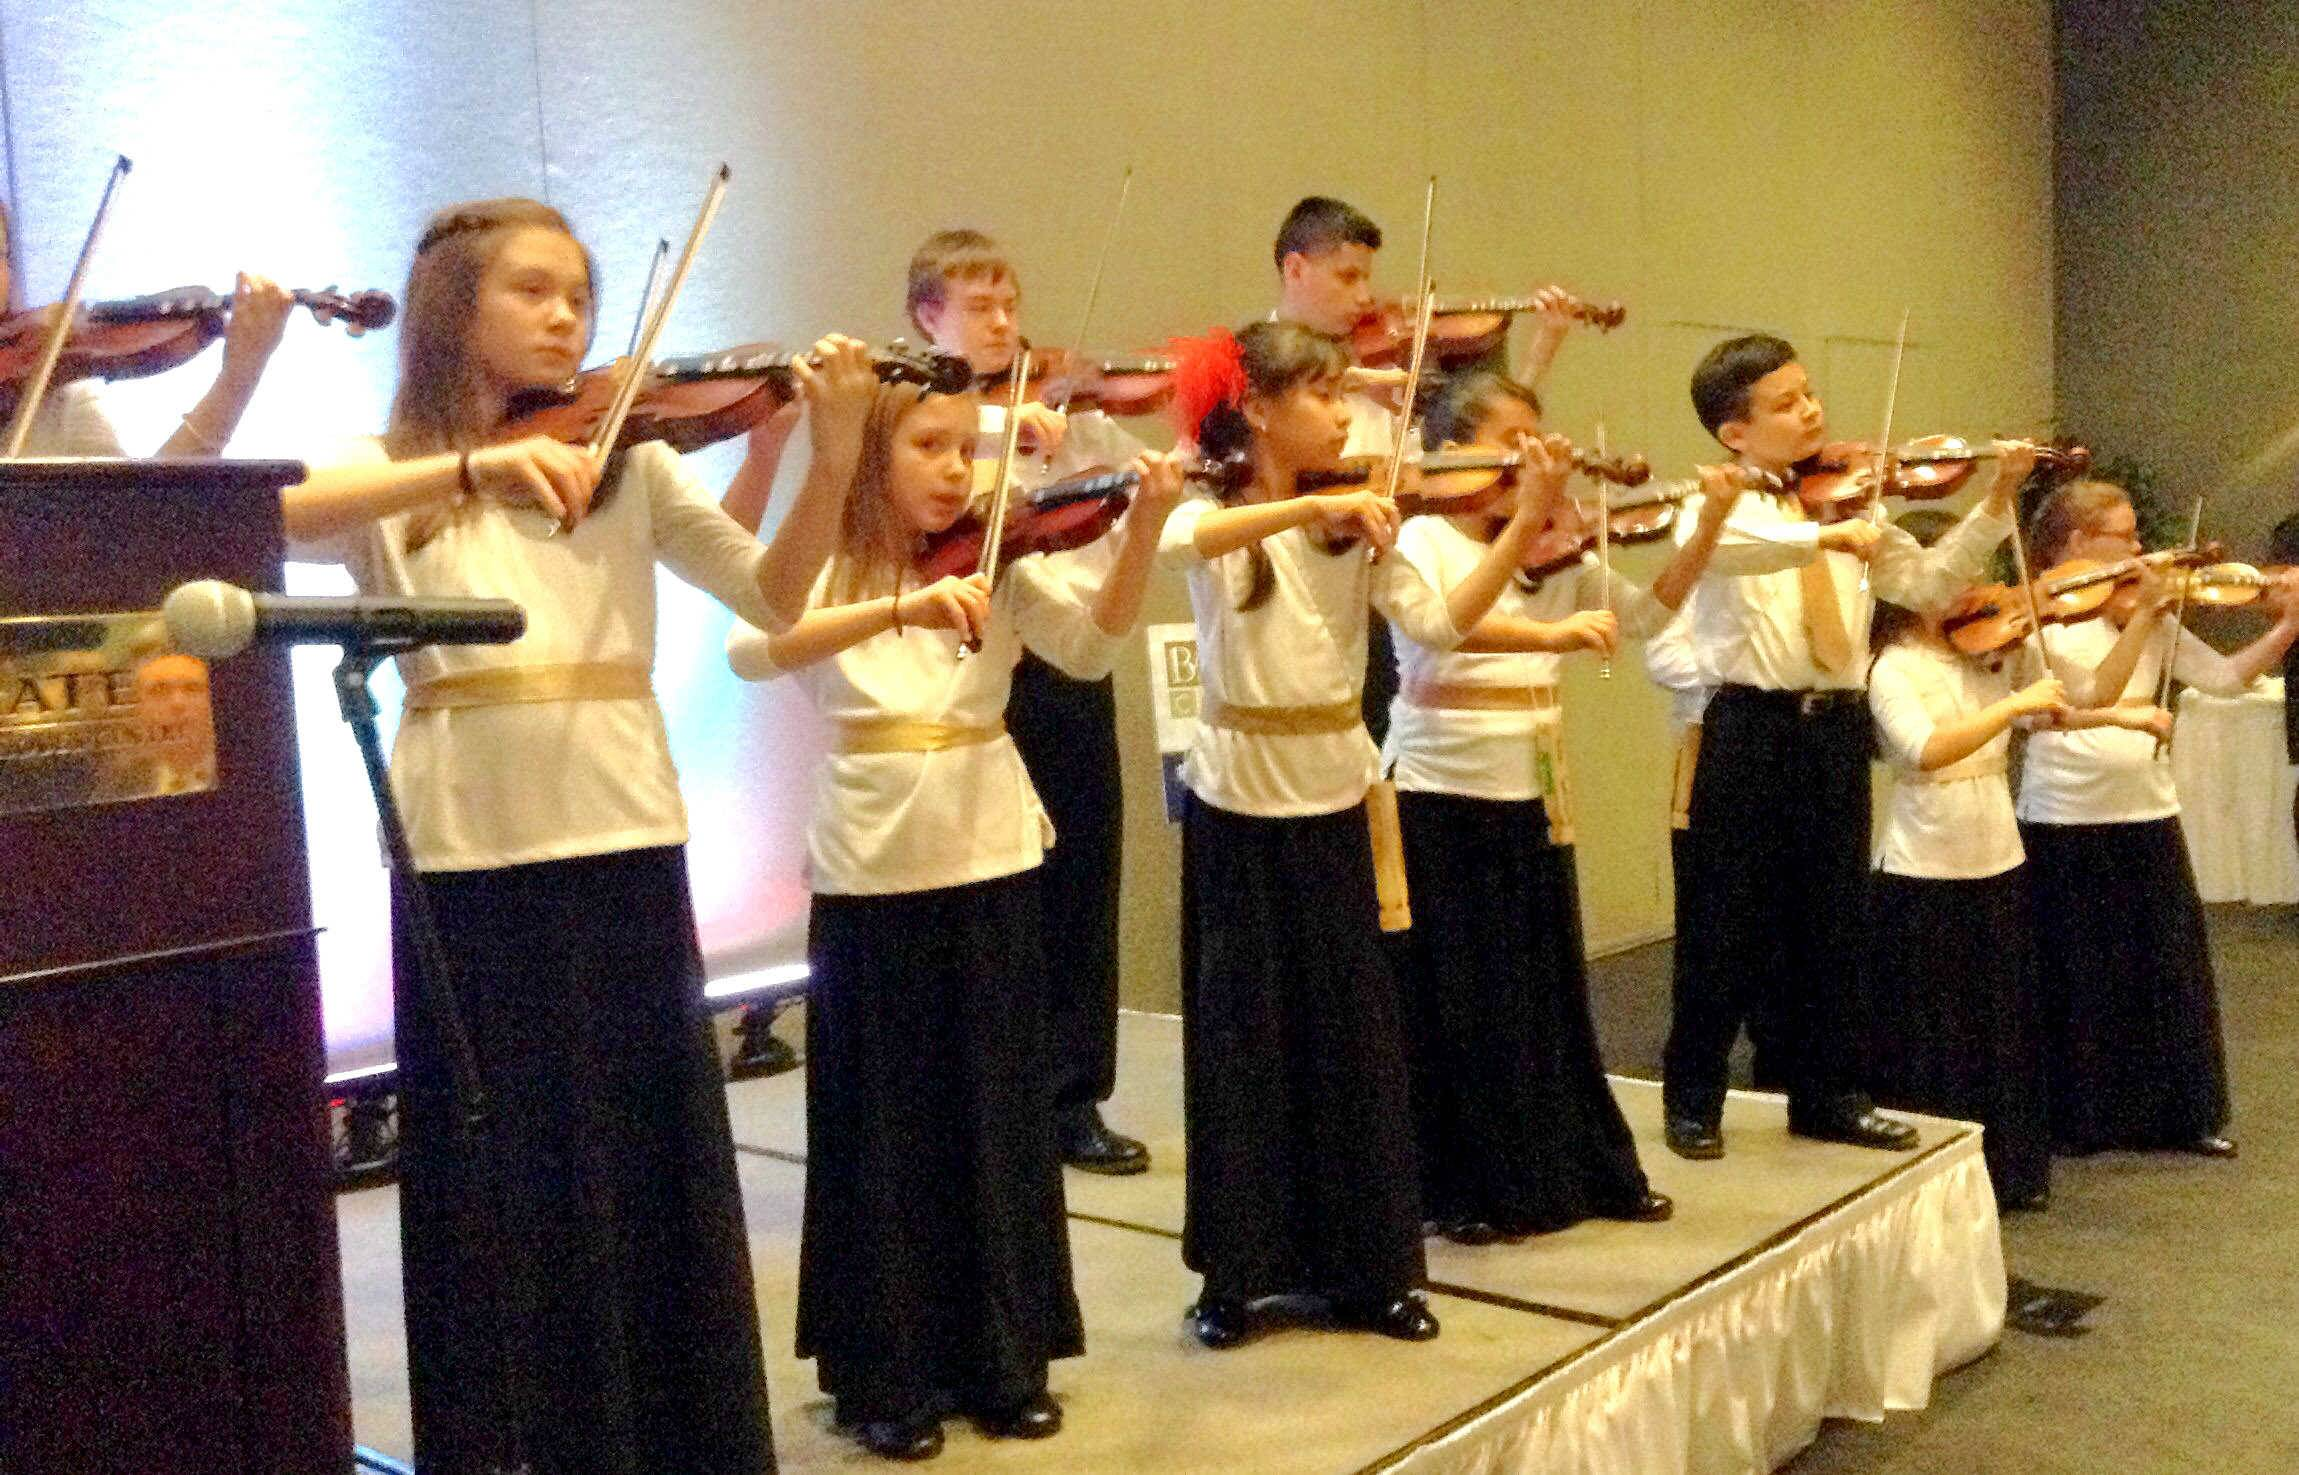 Members of 4 Strings Attached, a McHenry-based nonprofit music group, perform Thursday night during the Barrington Area Chamber of Commerce gala in Hoffman Estates.